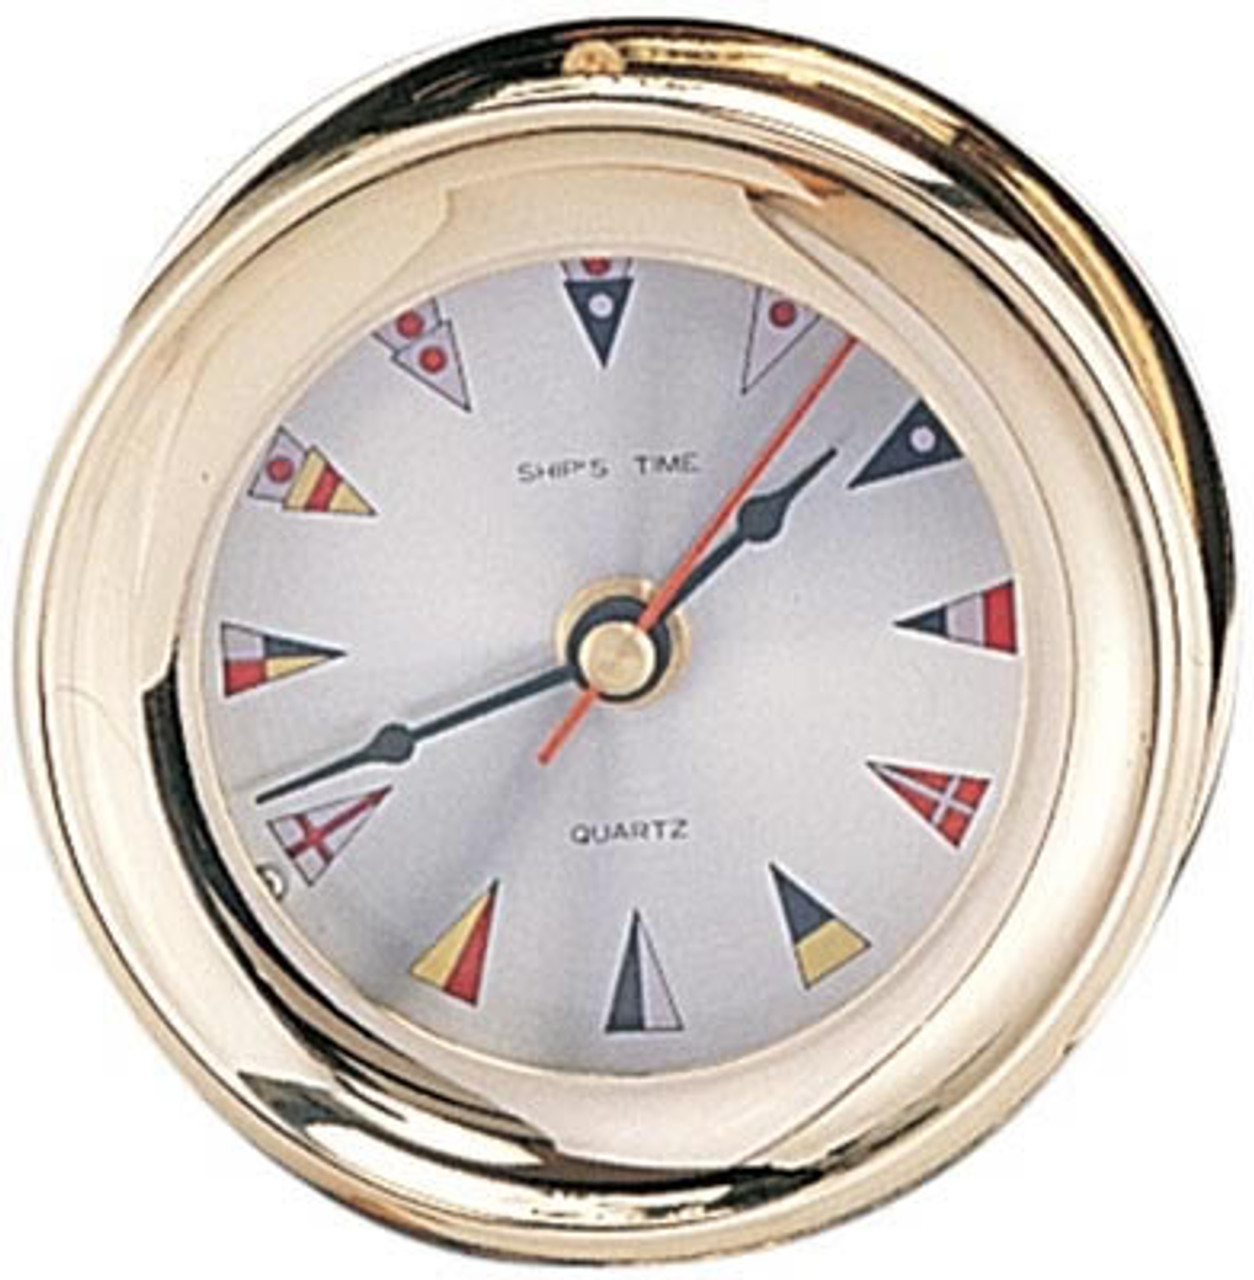 "(TK-225F 7.5"") 7.5"" Captain Clock with Flag Face"